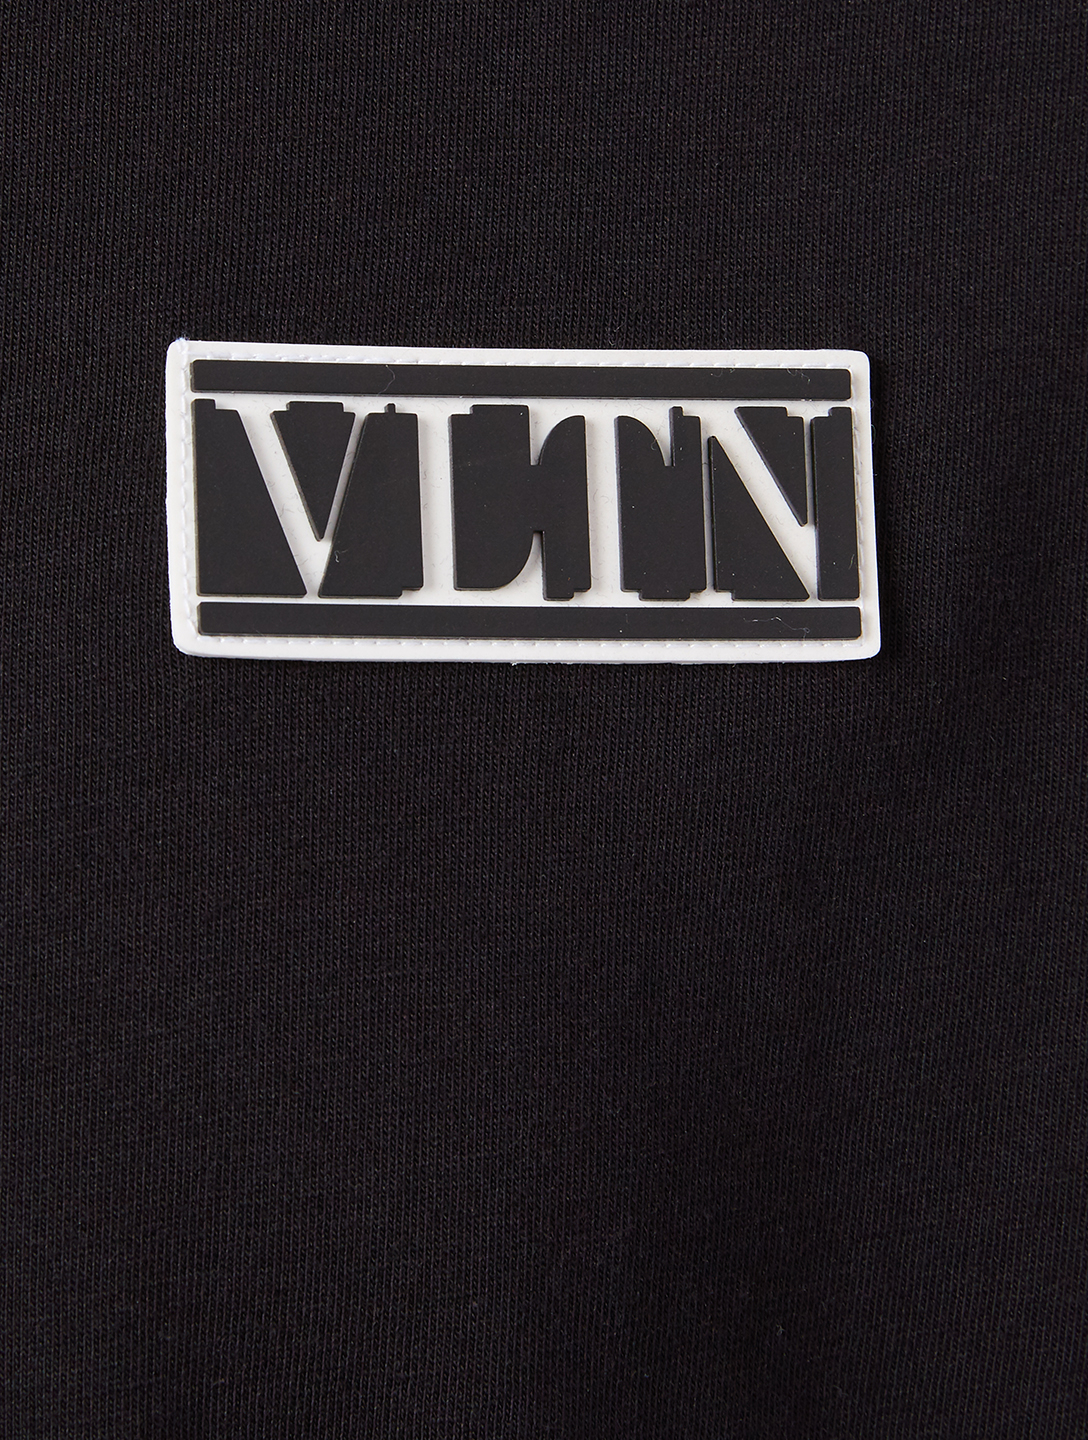 VALENTINO Cotton T-Shirt With VLTN Tag Men's Black